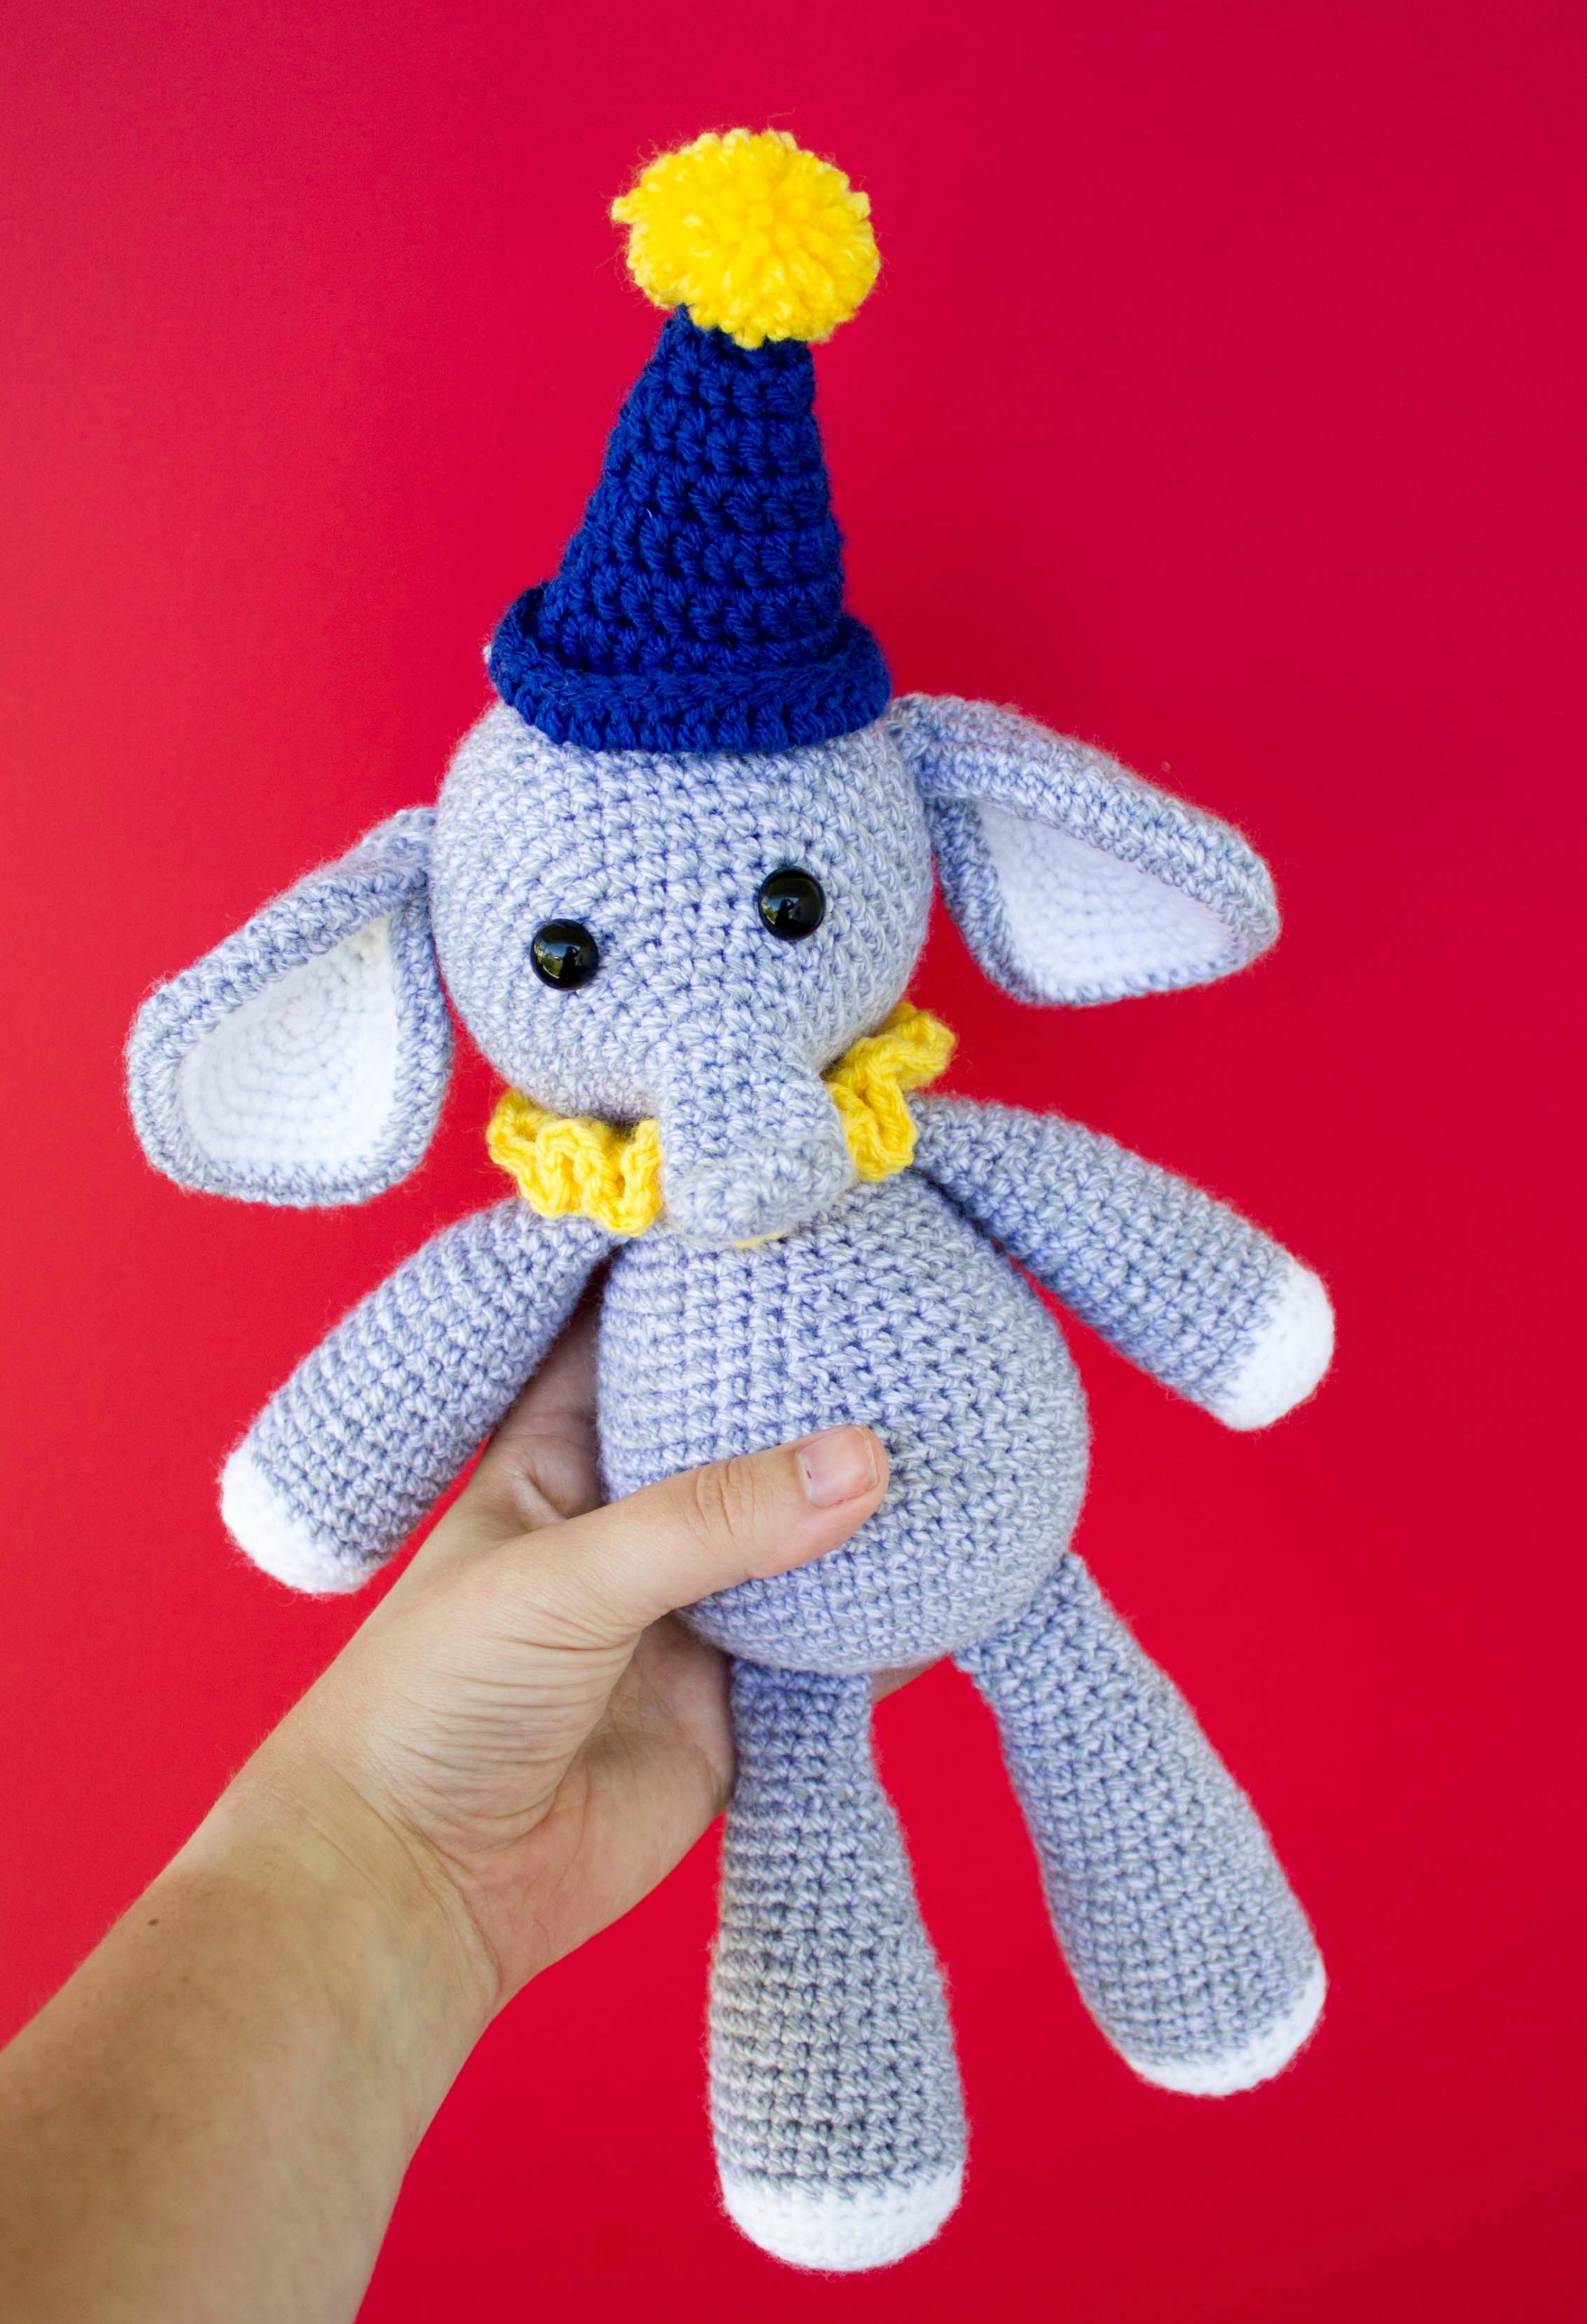 Crochet-A-Day: 9 Crochet Animal Appliqués | Crochet elephant ... | 2576x1759